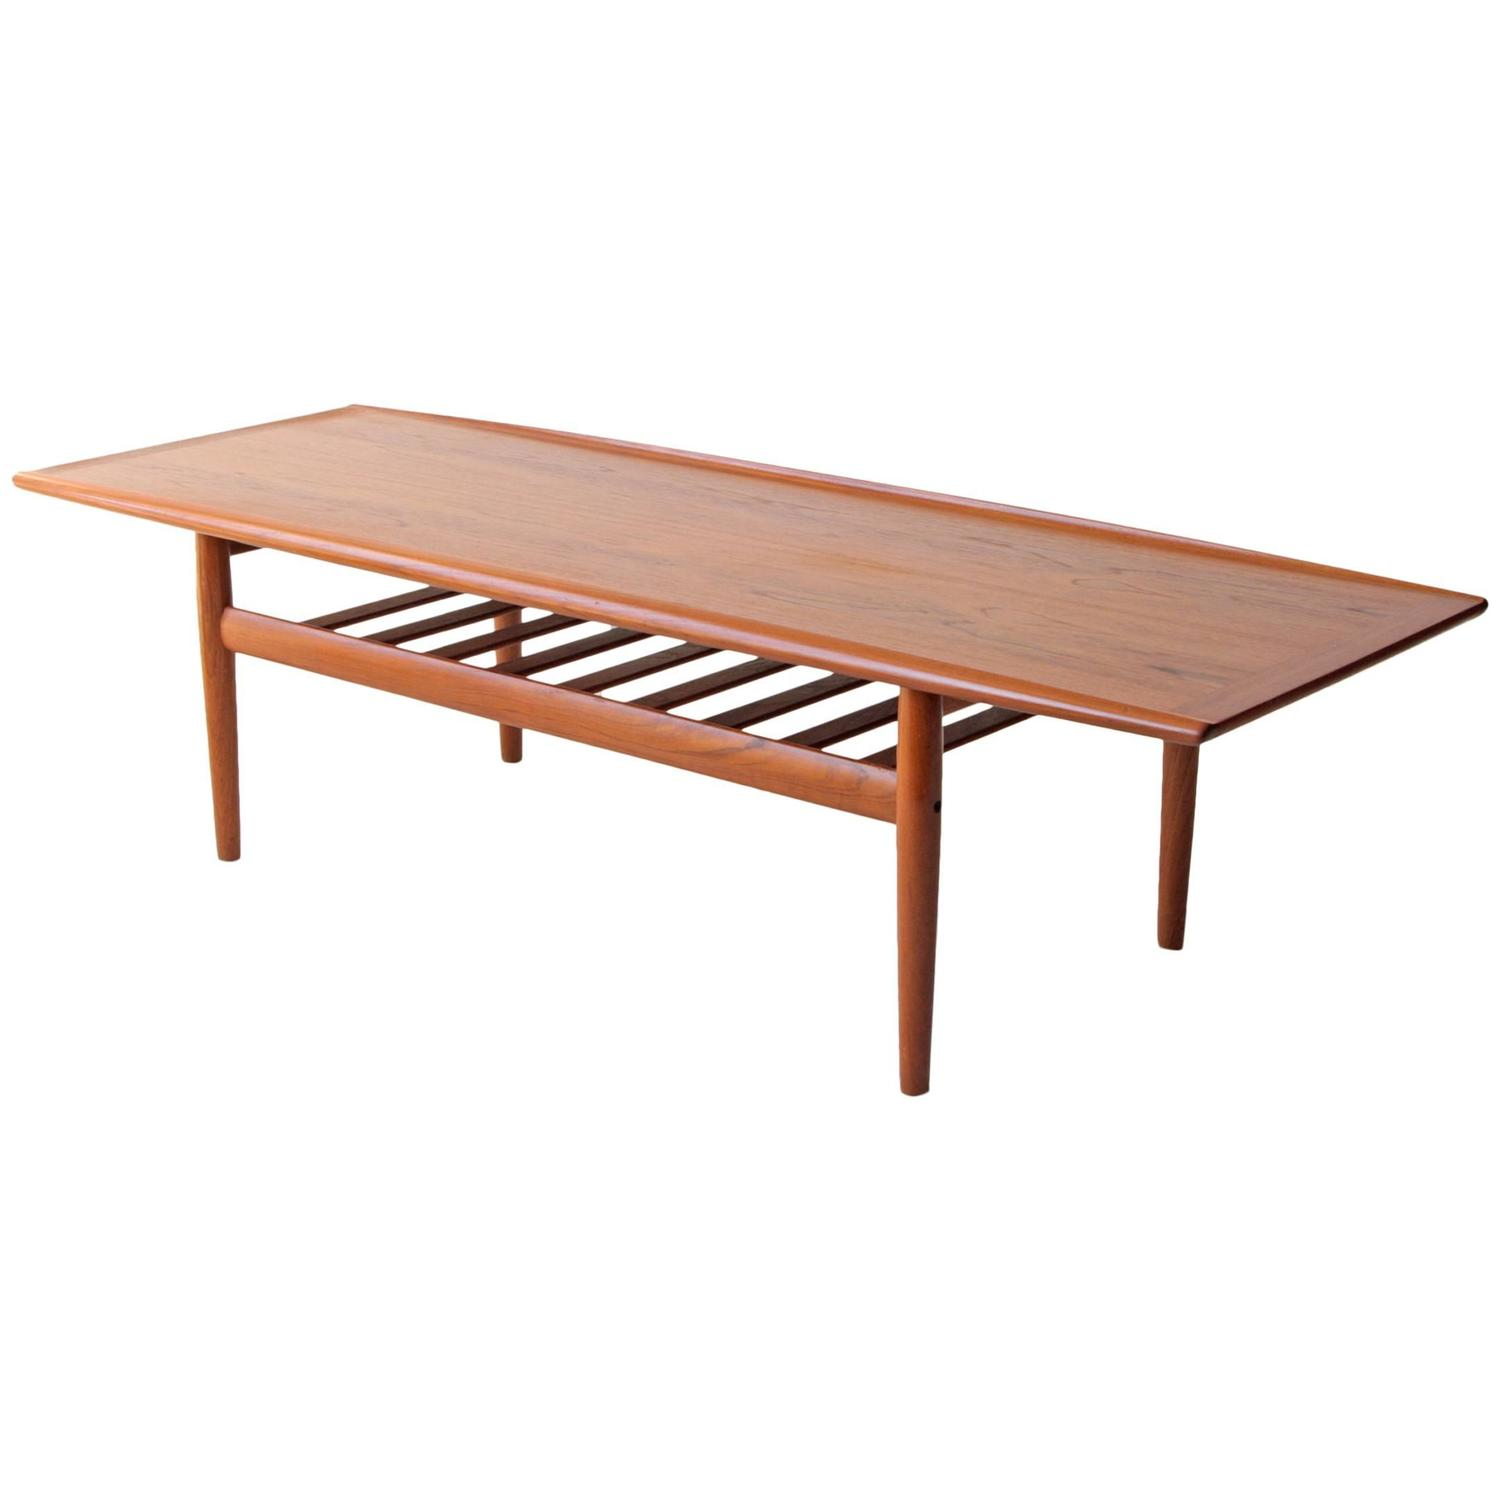 Grete jalk danish modern two tier teak coffee table at 1stdibs for Two small tables instead of coffee table